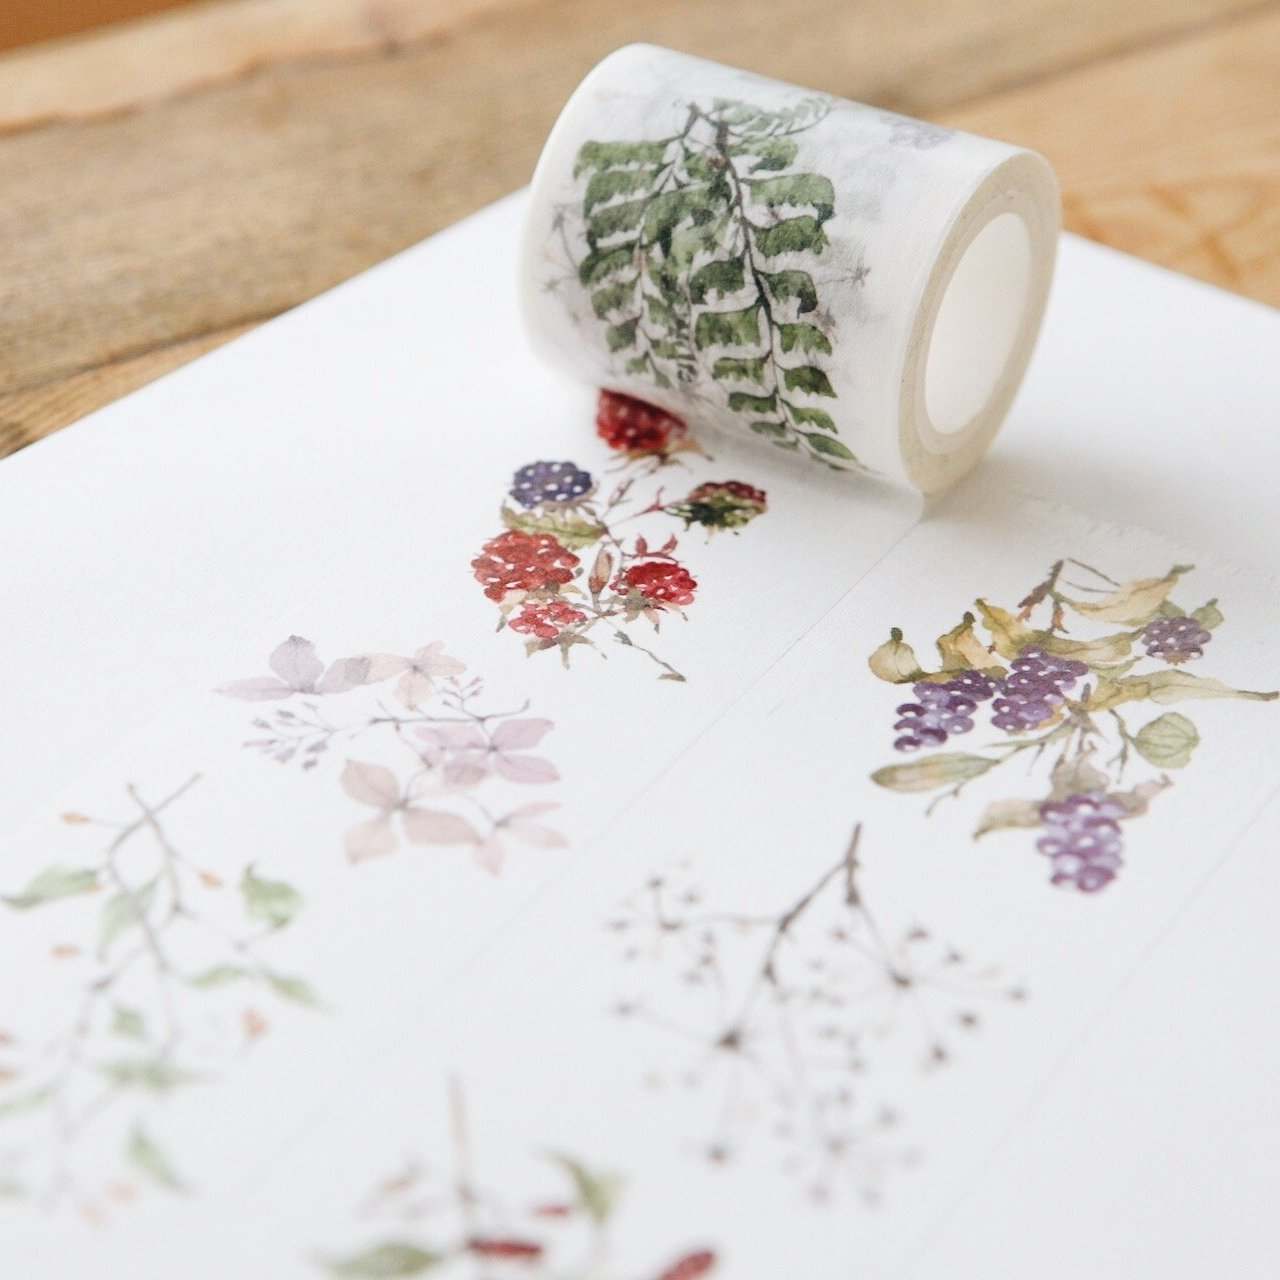 OURS Wild Woods Washi Tape